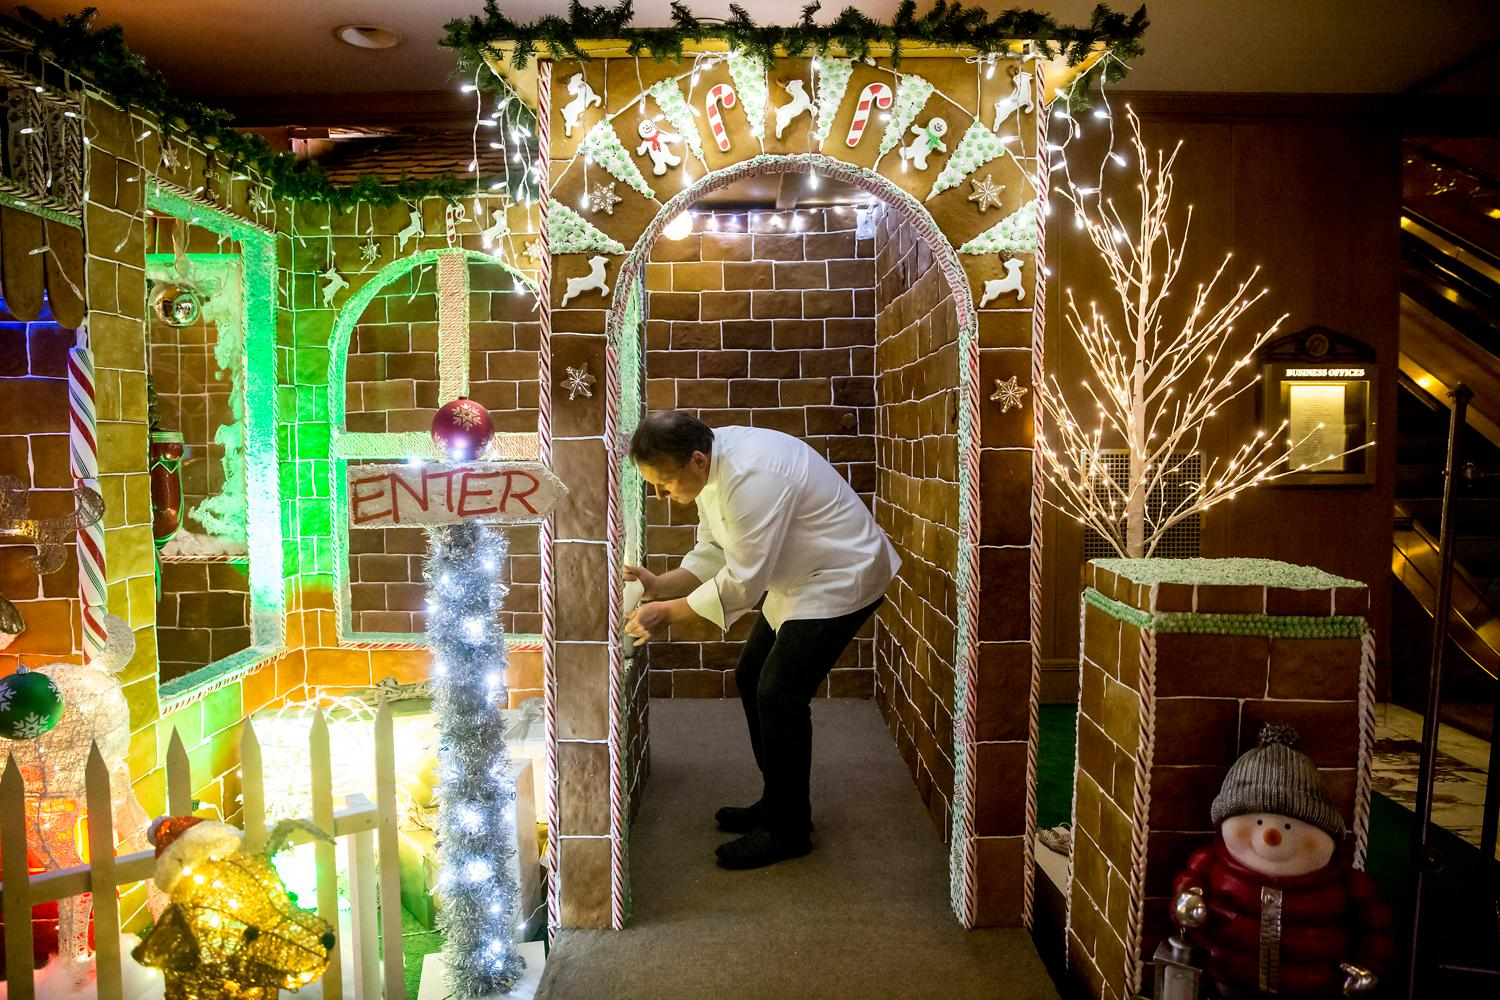 Executive pastry chef Artis Kalsons replaces candies on his lifesize gingerbread house after hungry kids picked them off at the entrance of the Fairmount Olympic Hotel in downtown Seattle. Talk about a dream home! Well - for a person with a sweet tooth that is!The creation of this colossal Gingerbread house has been going on since August and took eight engineers, 15 culinary stars, and hundreds of helping hands. The recipe looks like this: 960 pounds of flour, 20 gallons of milk, 75 gallons of icing, 80 pounds of molasses, 80 pounds of butter, 3 pounds of cinnamon, 3 pounds of nutmeg, 170 pounds of brown sugar, 3 pounds of anise, and 3 pounds of clove! Phew. It gets better... The finished product has 4,100 Gingerbread tiles, 2,500 candy canes, 1,000 spearmints, 50 pounds of crushed candy and 144 feet of candy ropes. I think we just got a sugar contact high. If you haven't ventured down there, this gingerbread house in a must-see, folks! (Image: Sy Bean / Seattle Refined).